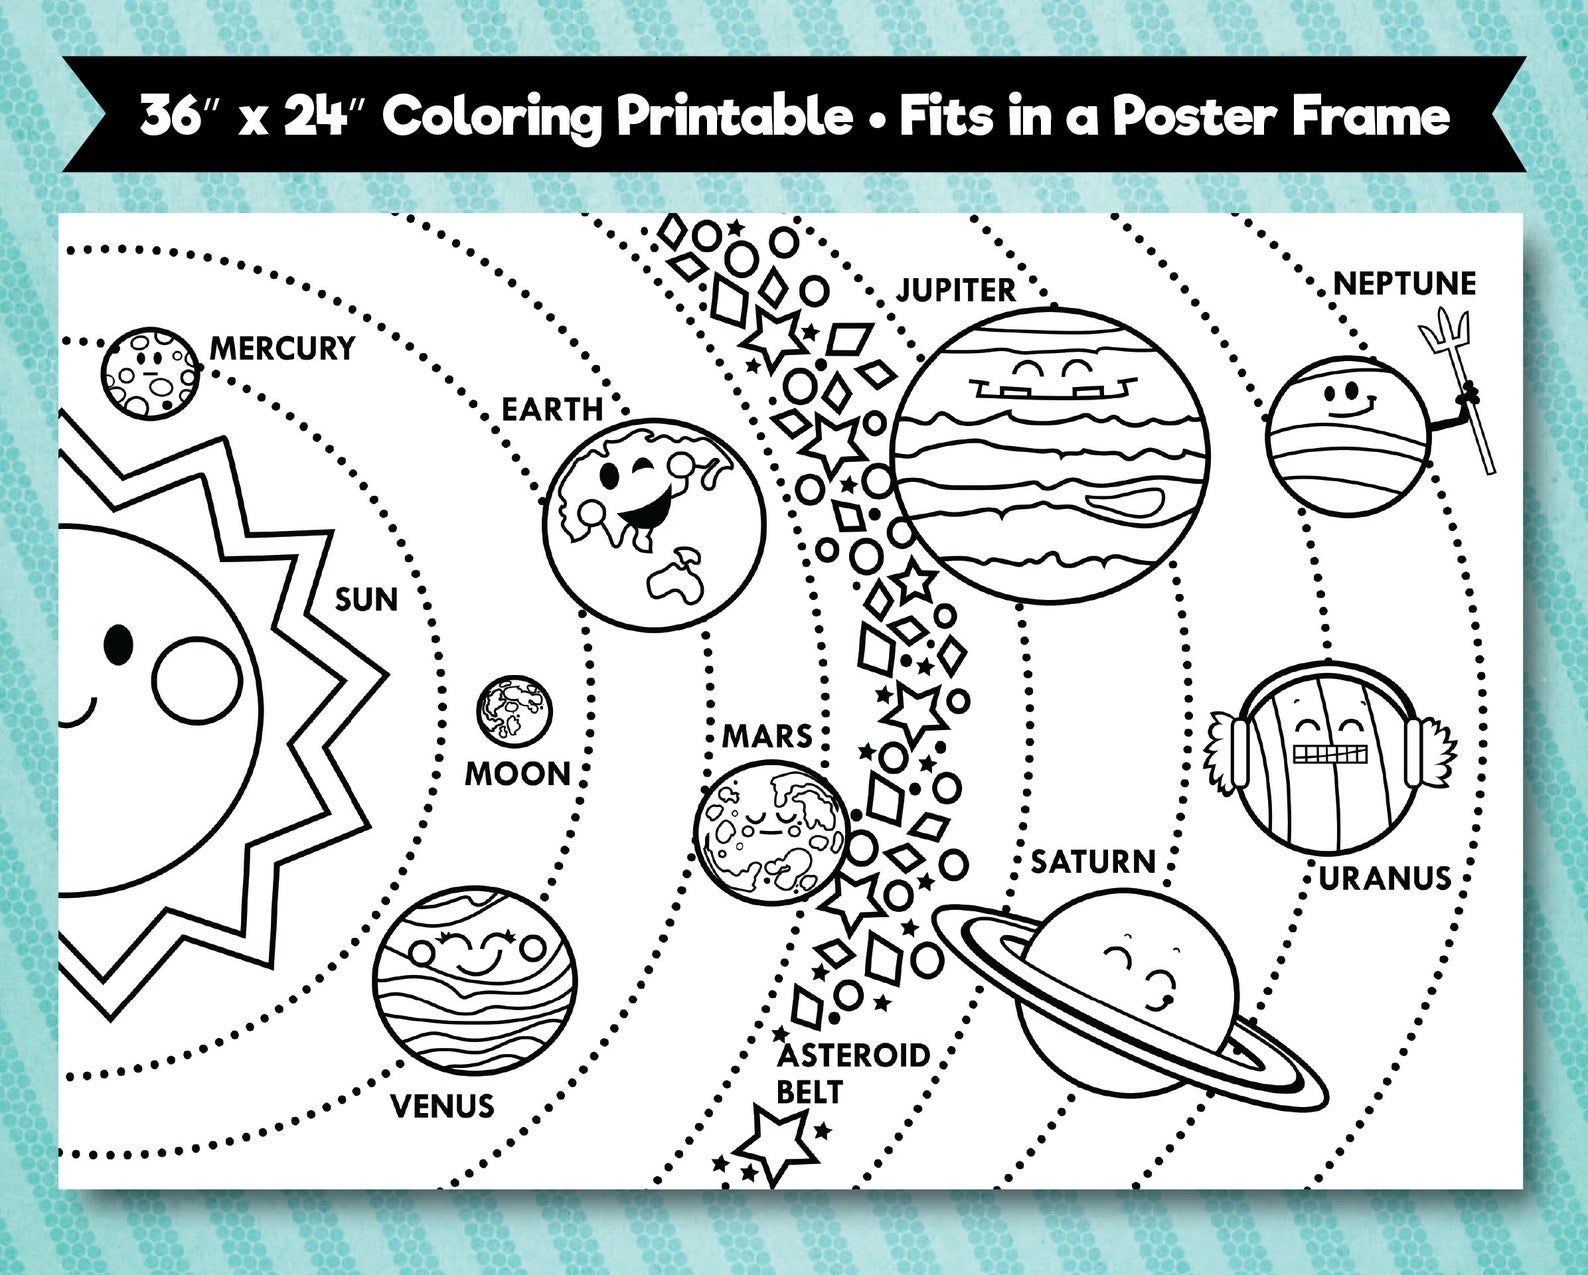 Solar System Printable 36x24 Horizontal Layout